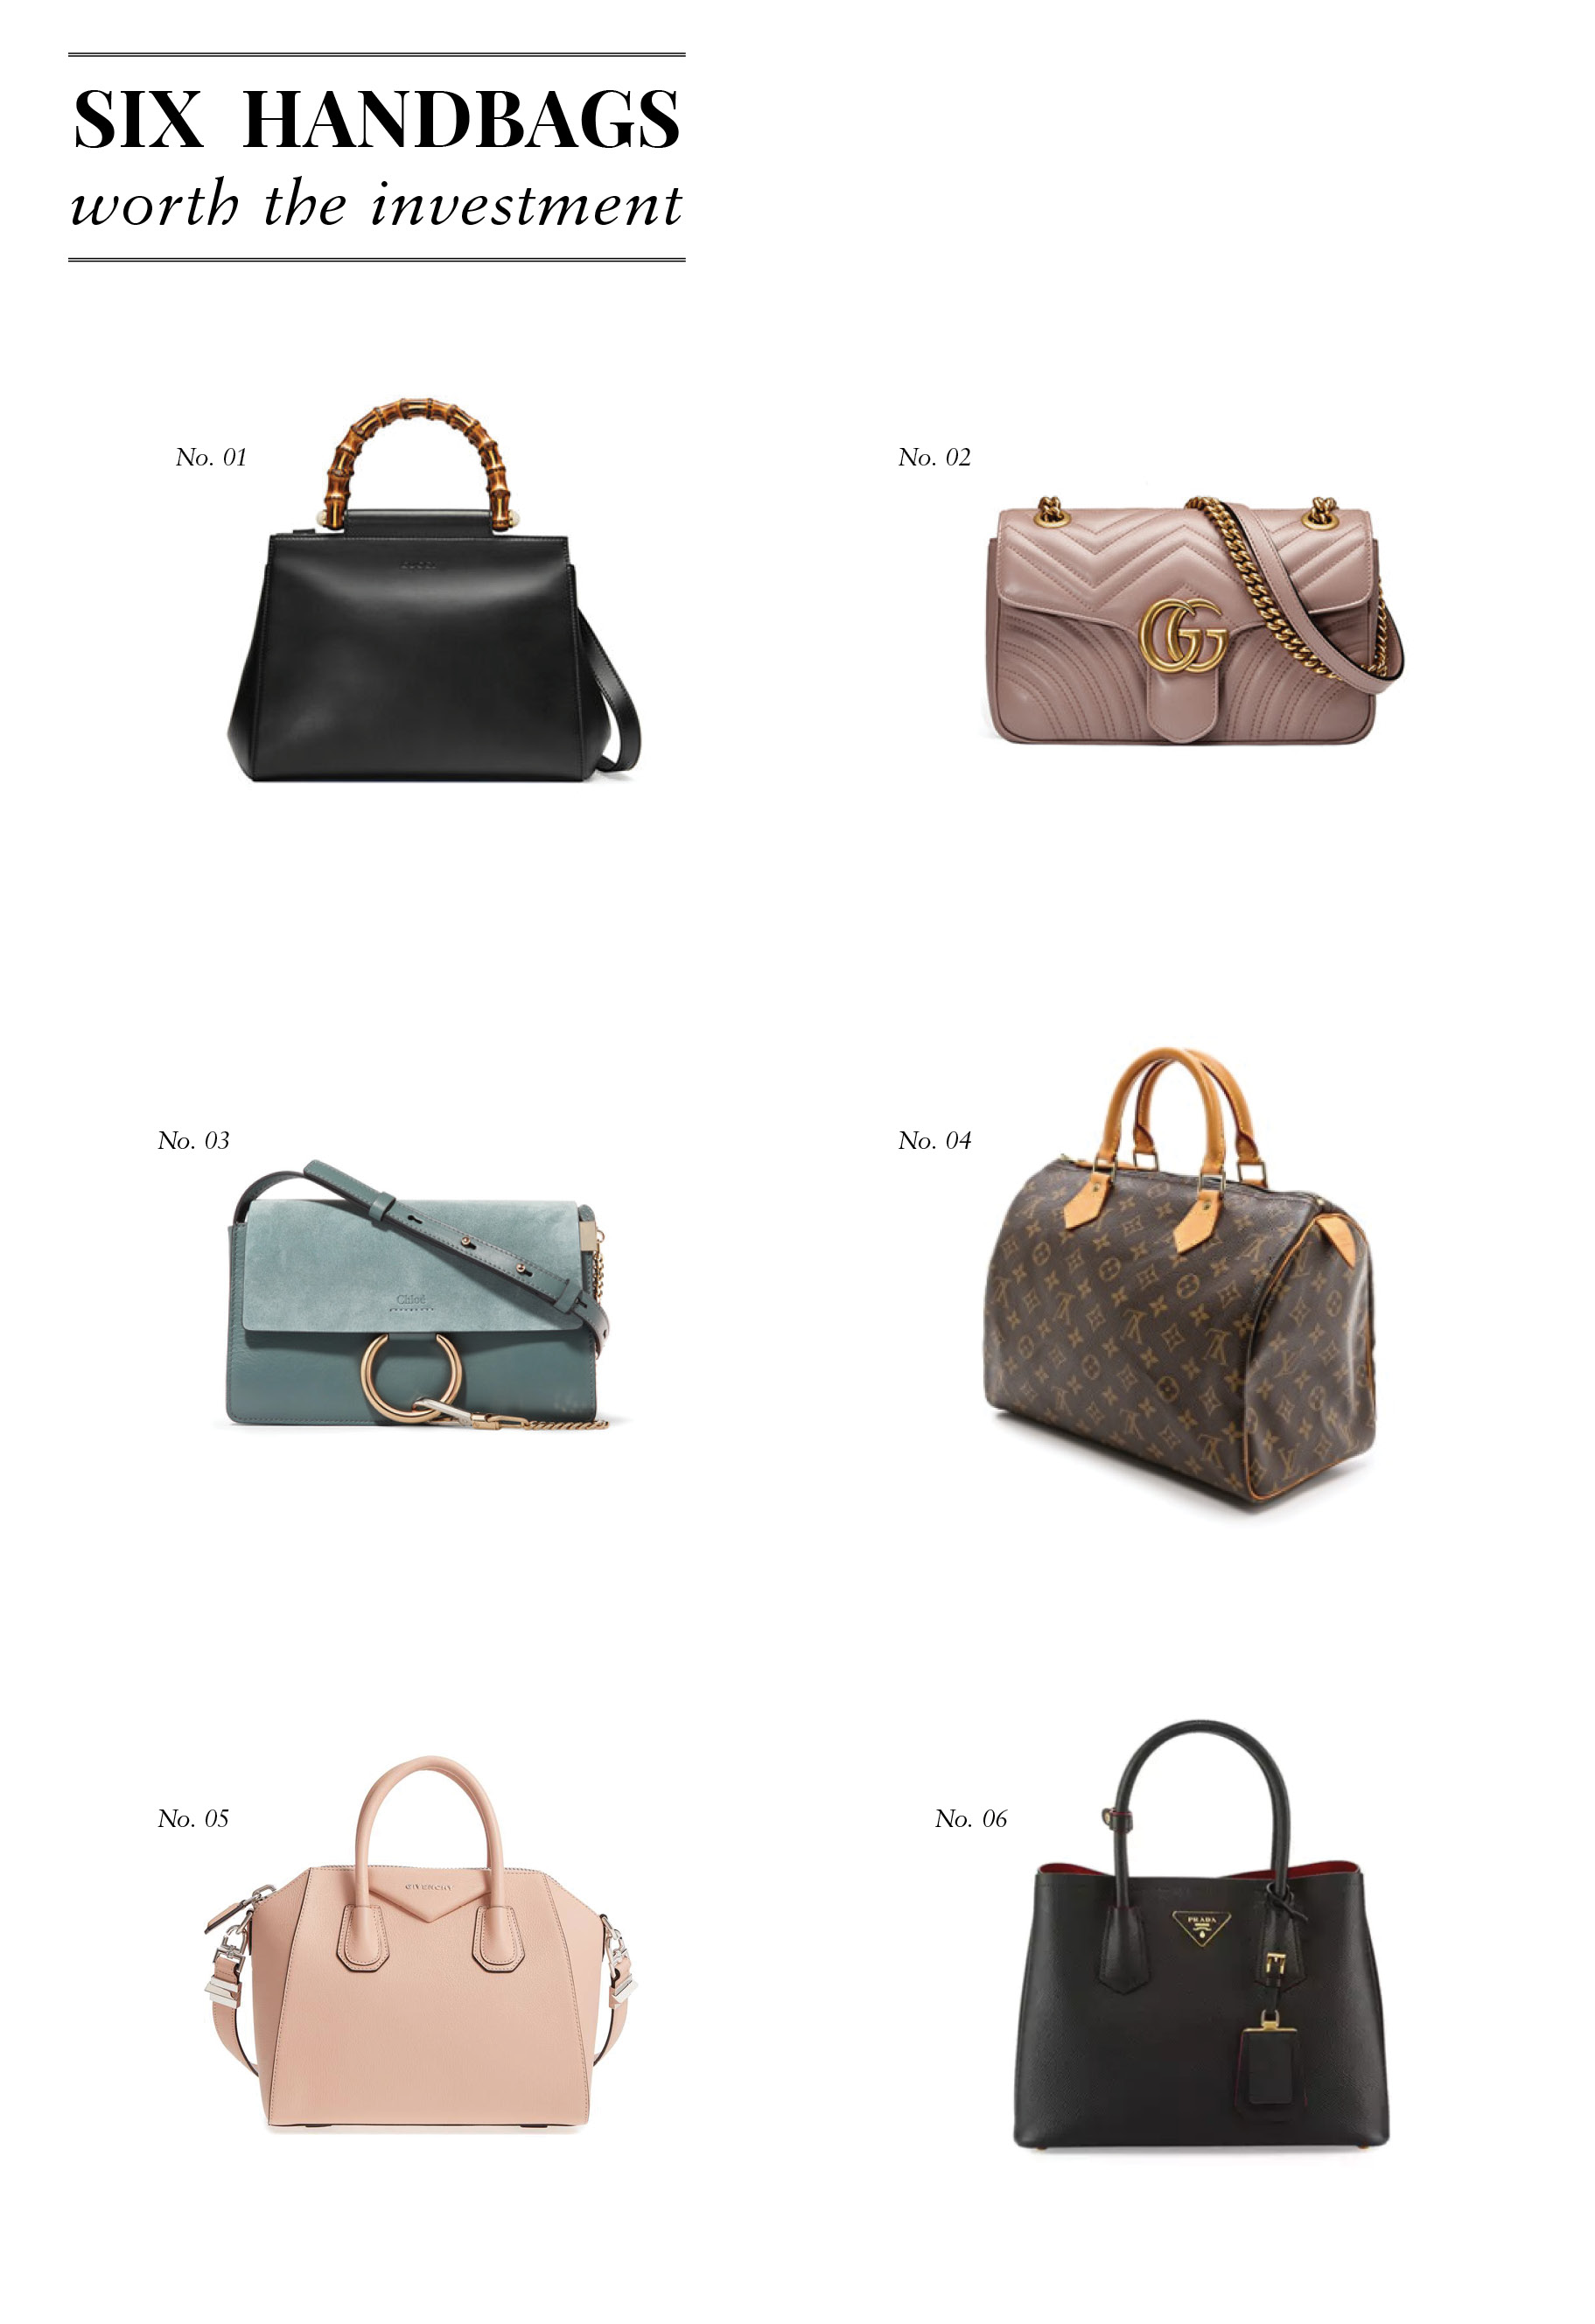 Liz Adams of Sequins & Stripes shares her favorite designer handbags that are more than worth the investment!